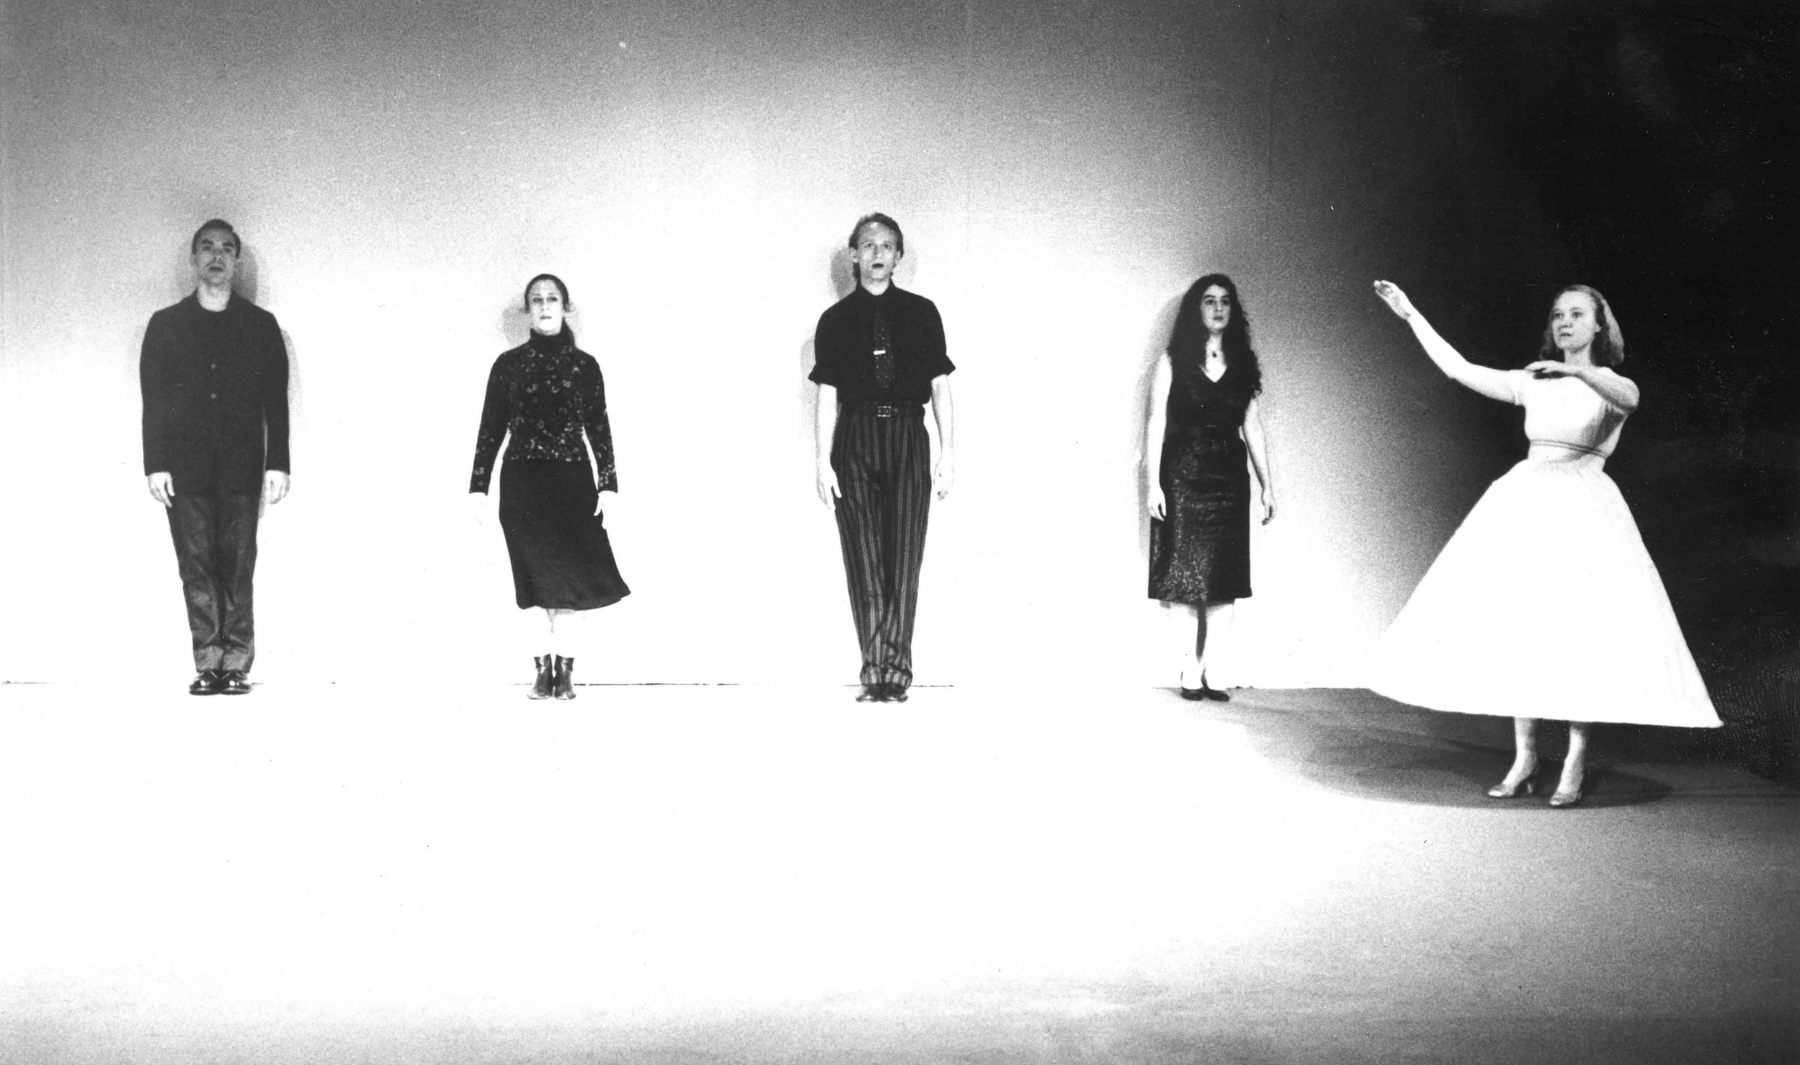 Turtle Dreams (Cabaret), Meredith Monk, Paul Langland, Meredith Monk, Robert Een, Andrea Goodman + Gail Turner, FTA 1987© Jack Vartoogian